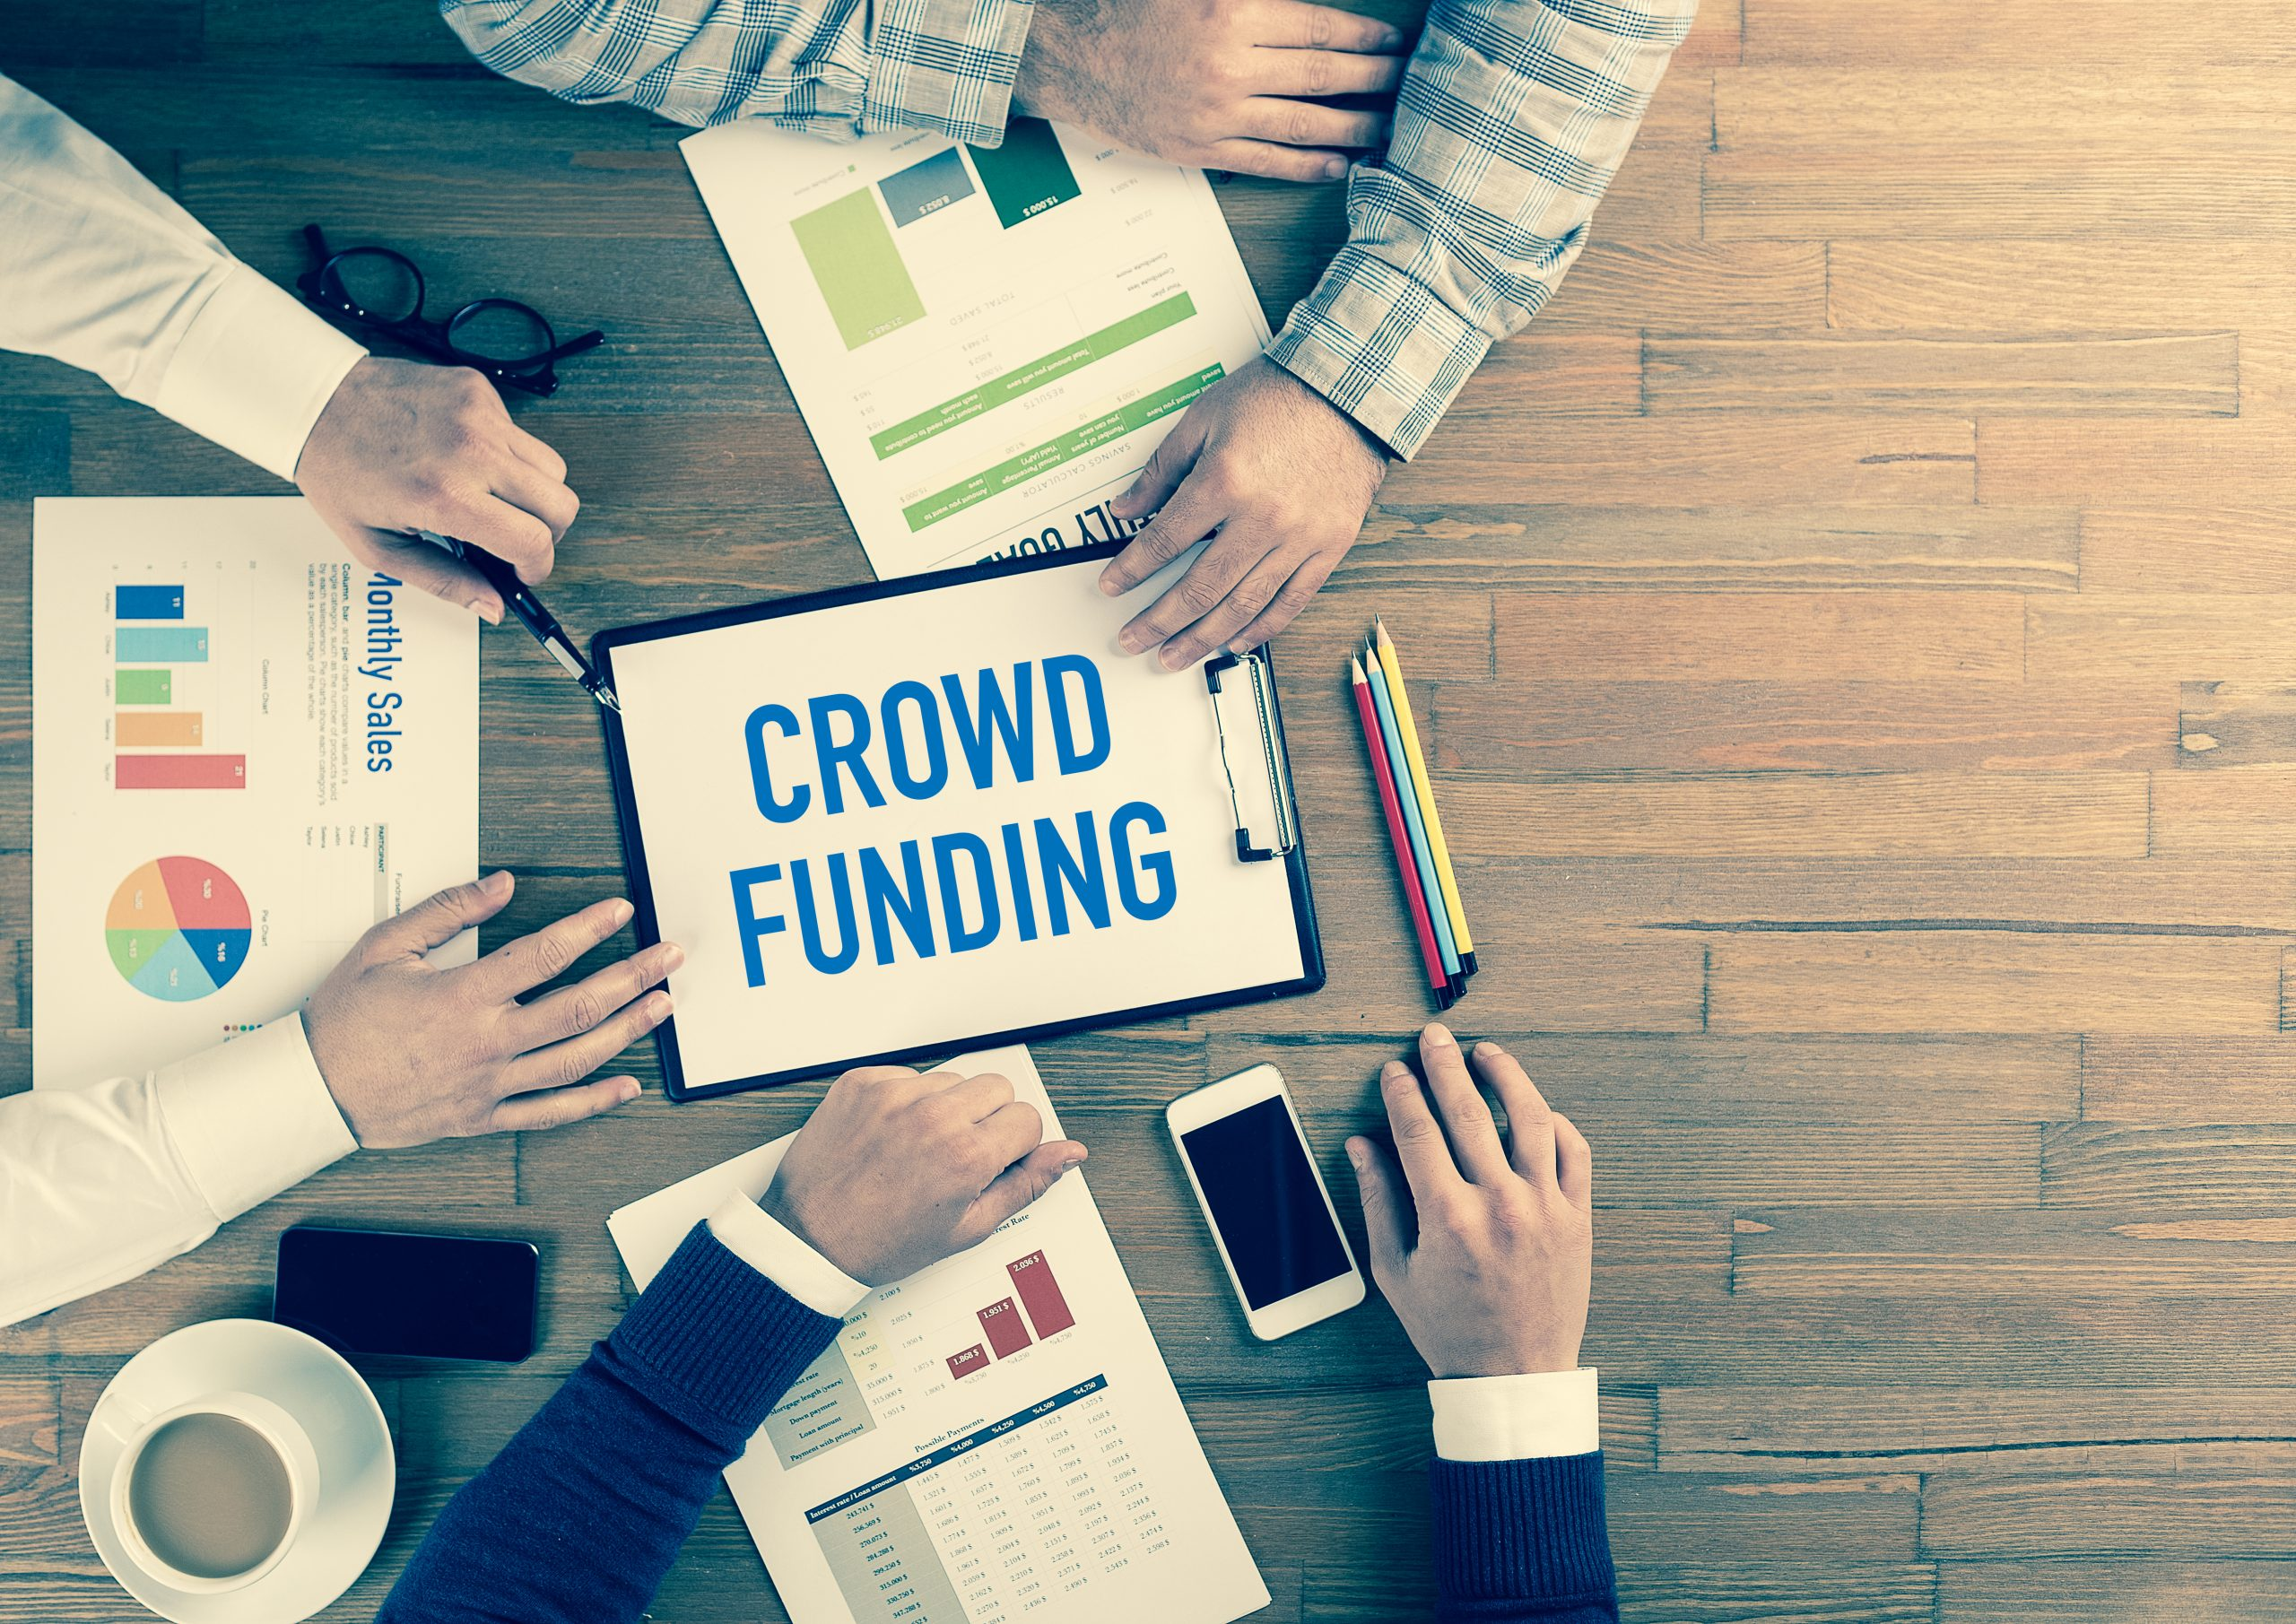 Learn about how you can train your crowdfunding team with this guide.